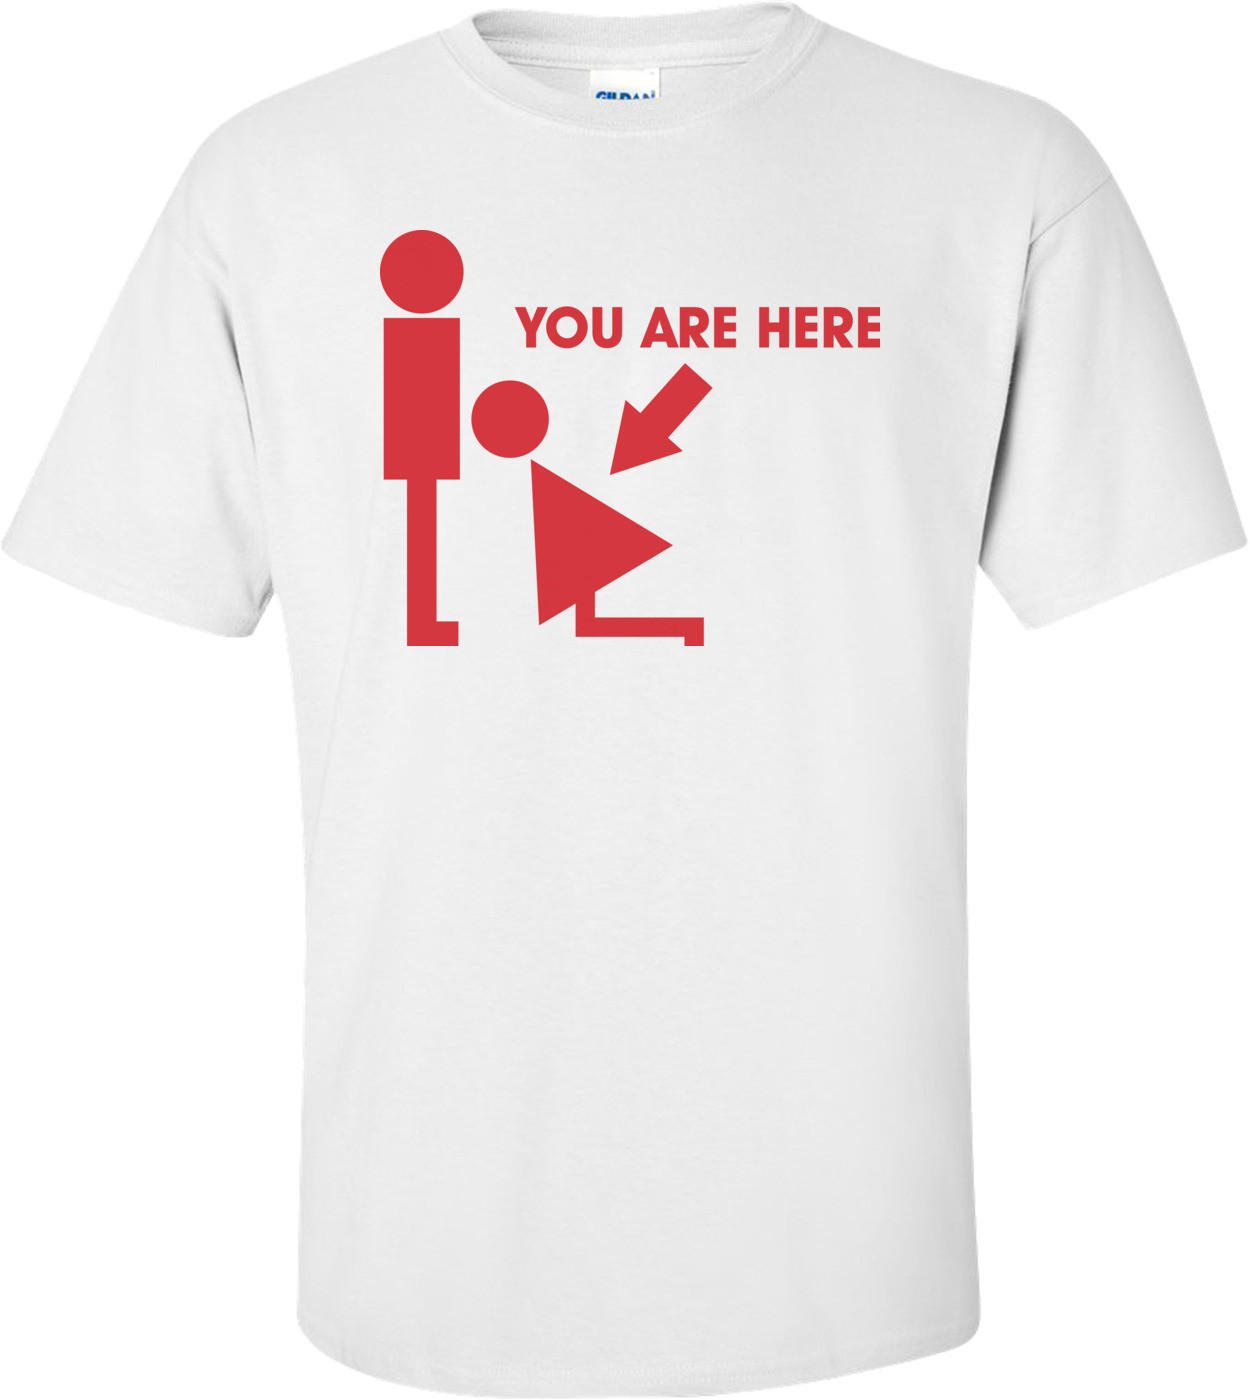 You Are Here - Blowjob T-shirt